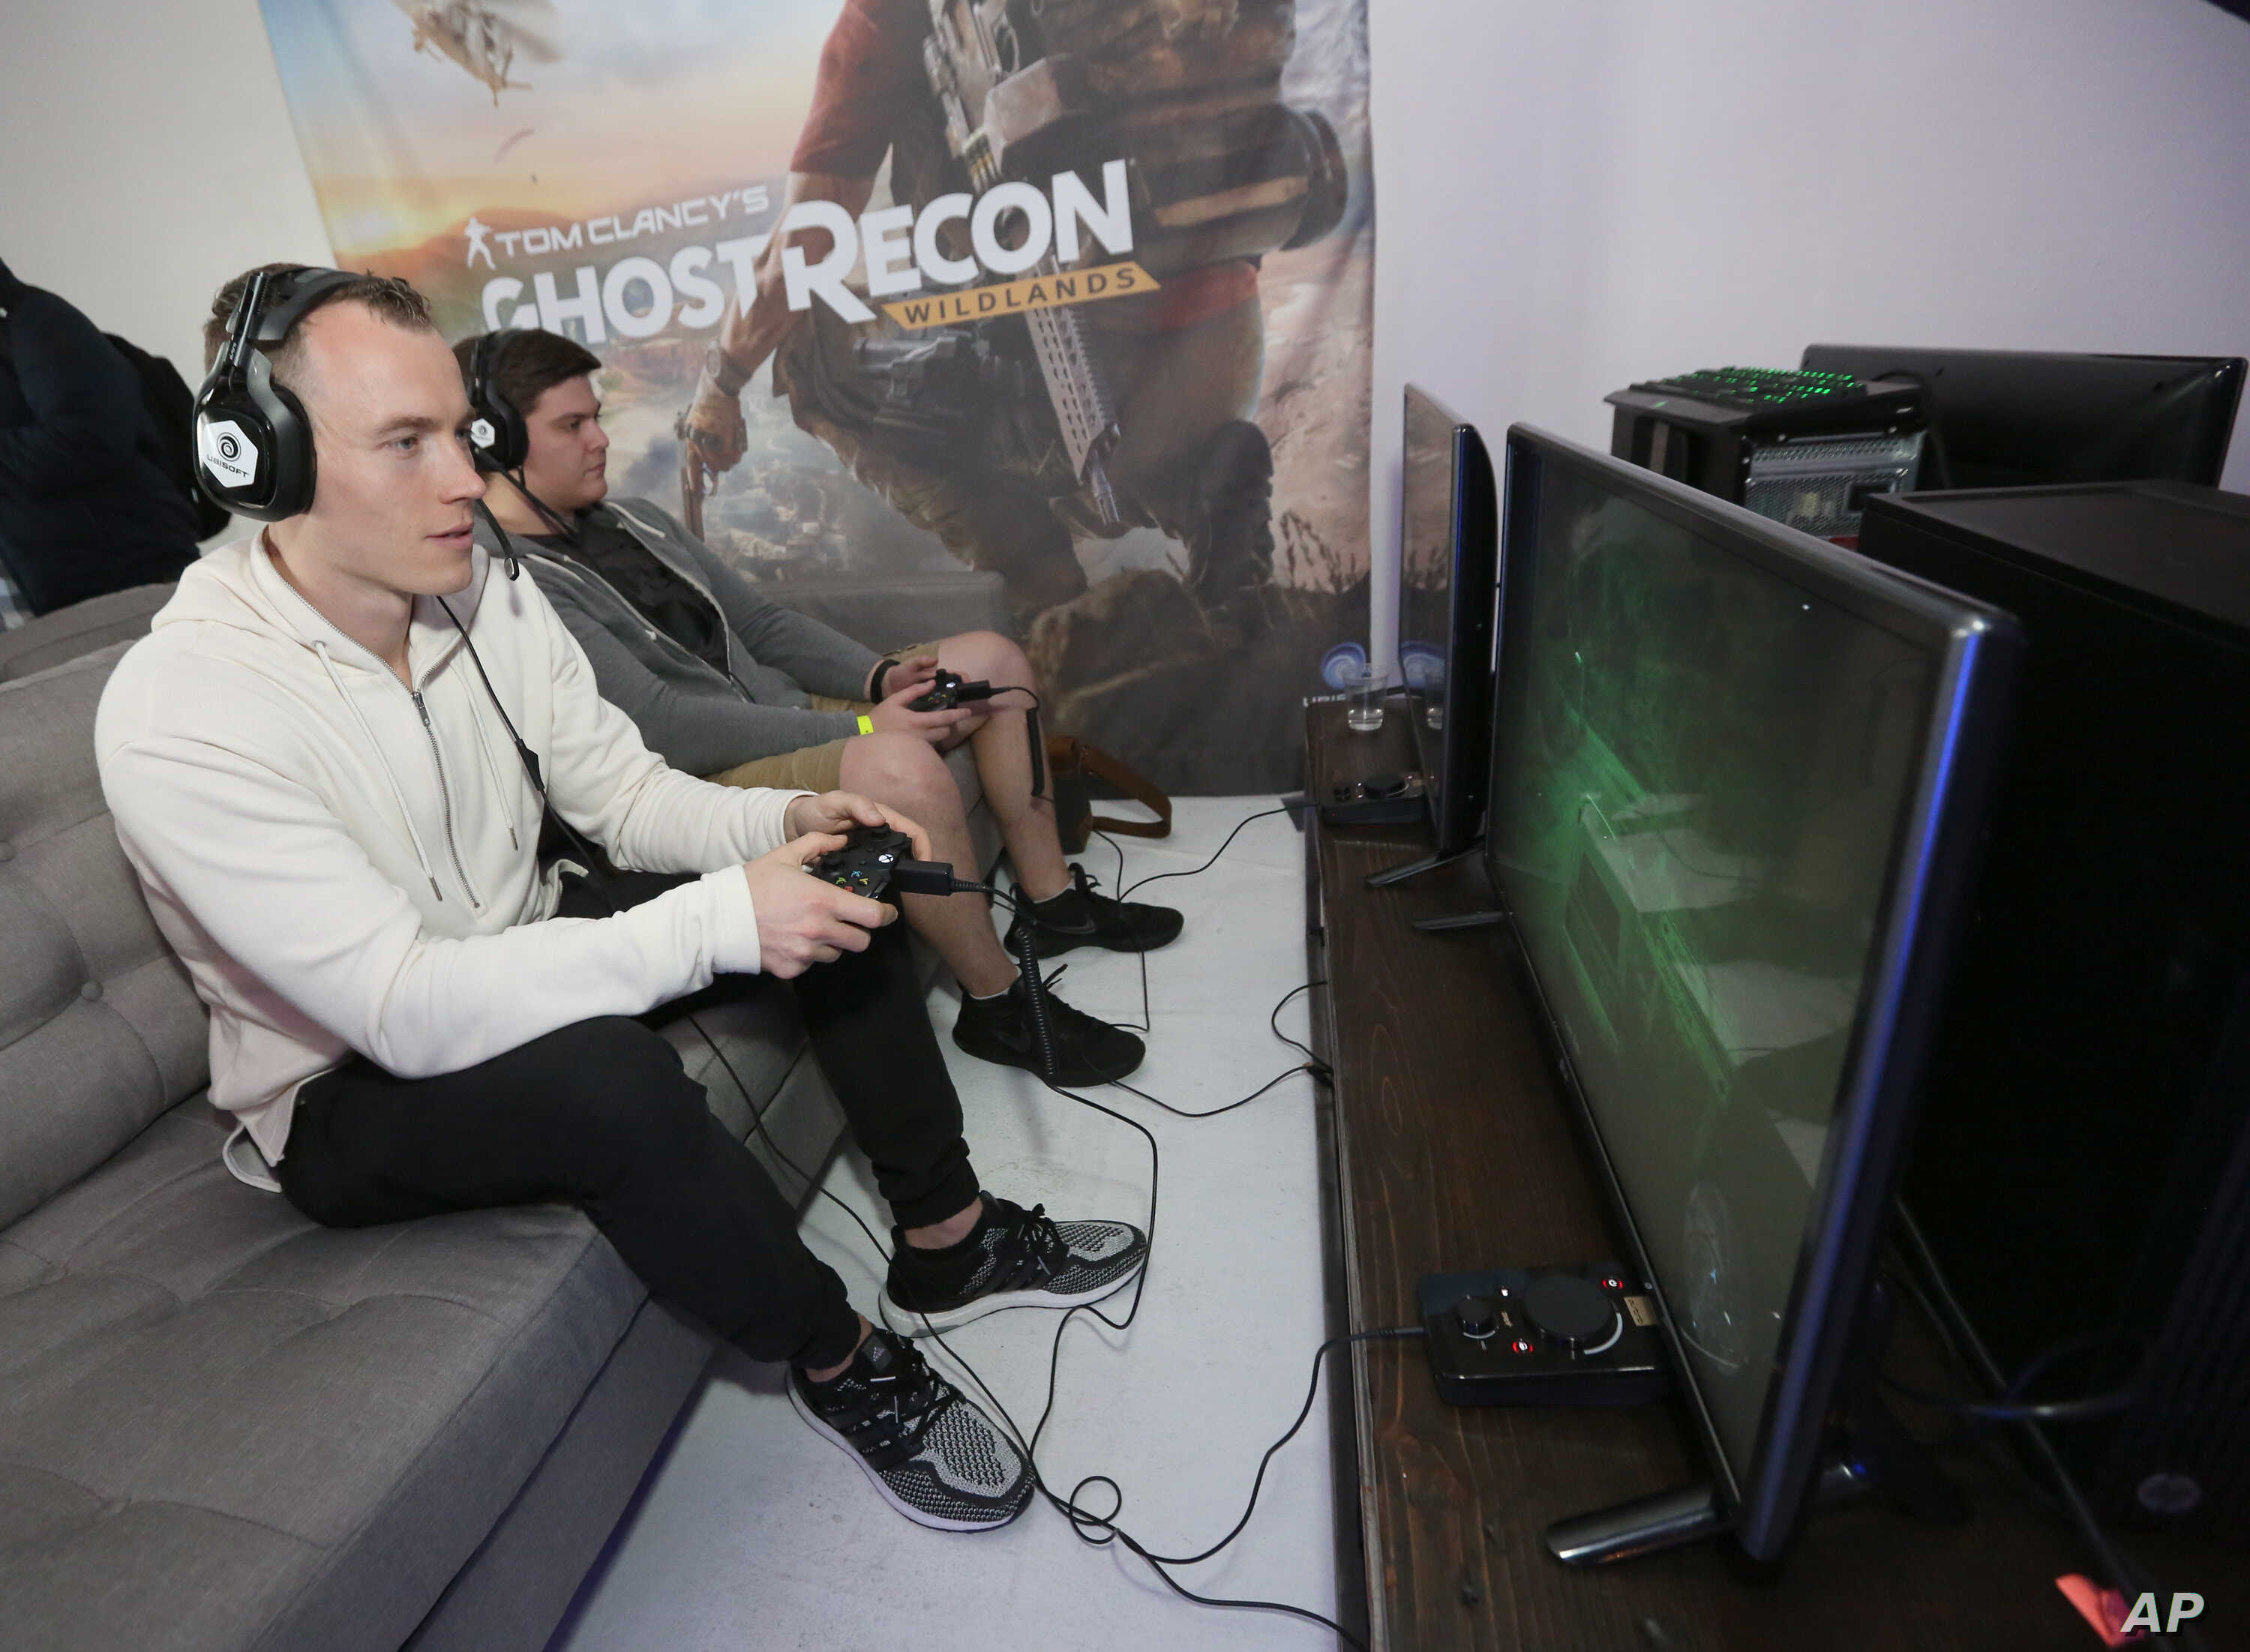 Bolivia Complains To France About Its Portrayal In Video Game